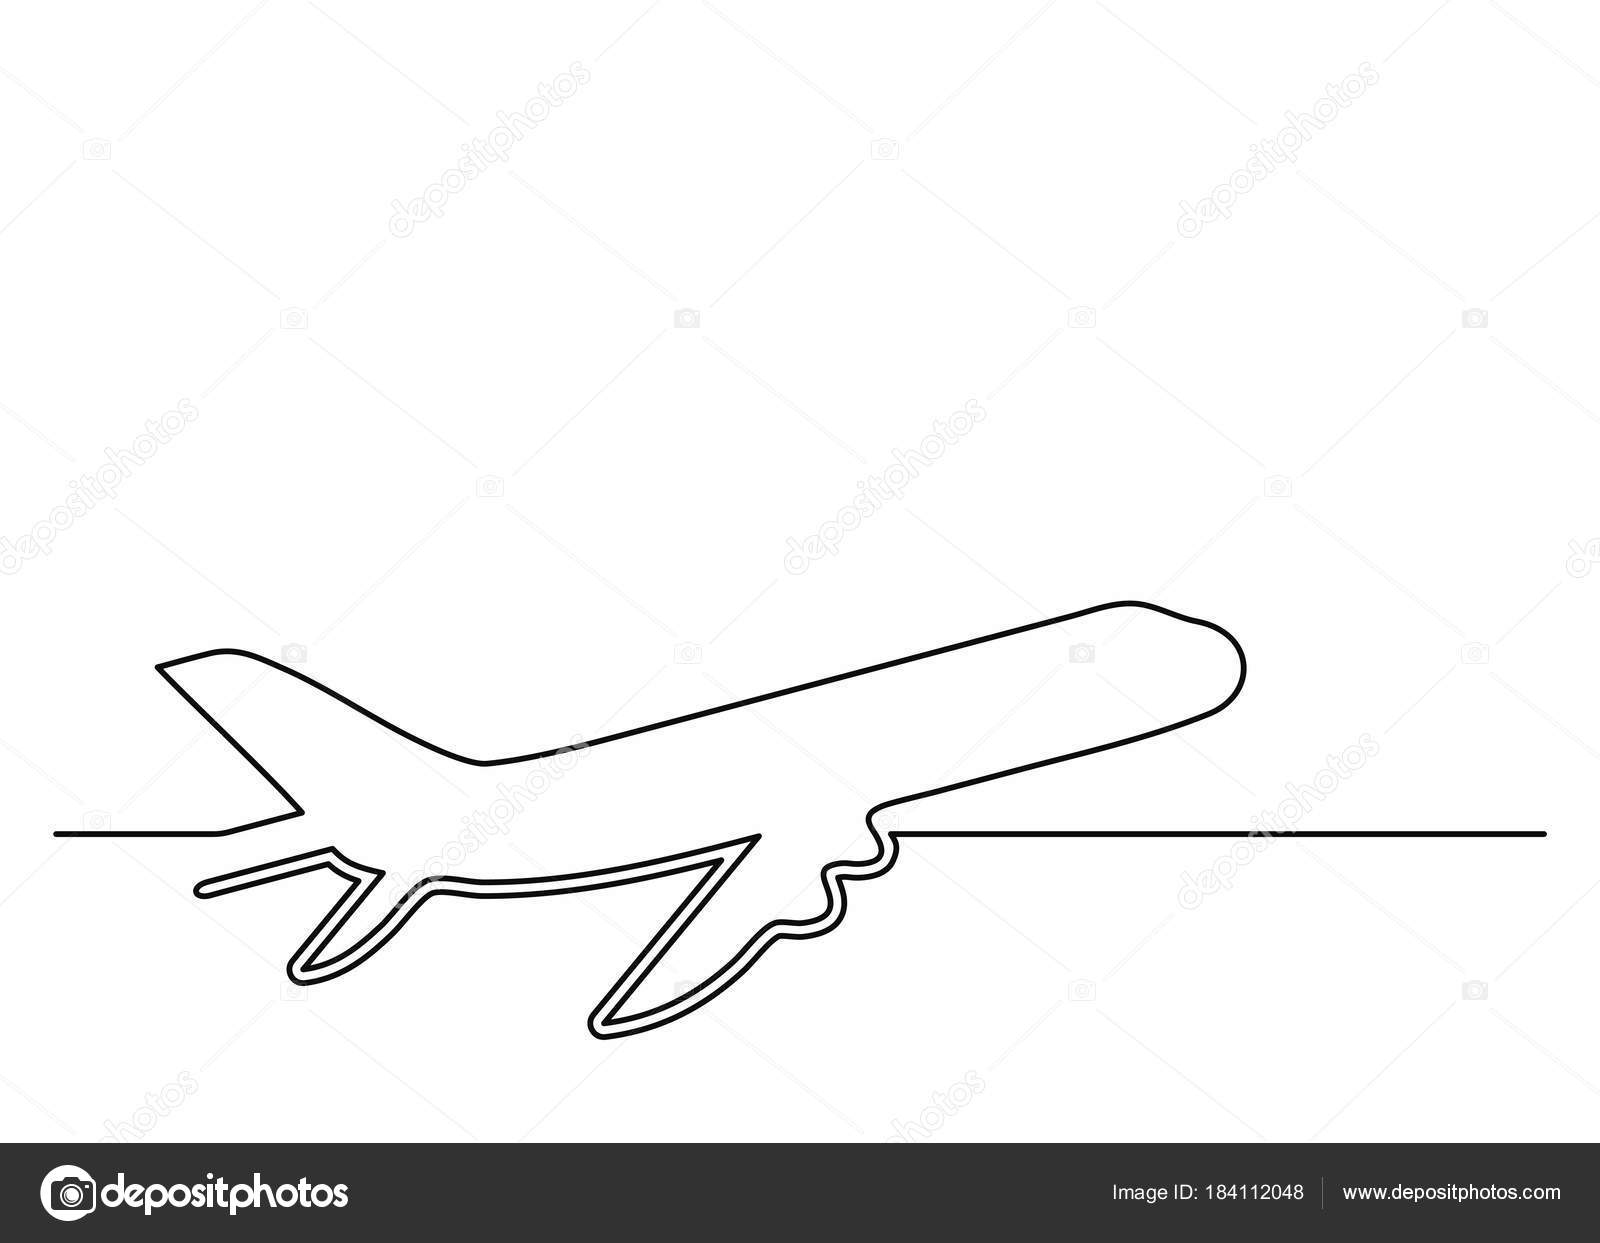 Plane Icon In Line Art Style Airliner Continuous Drawing Single